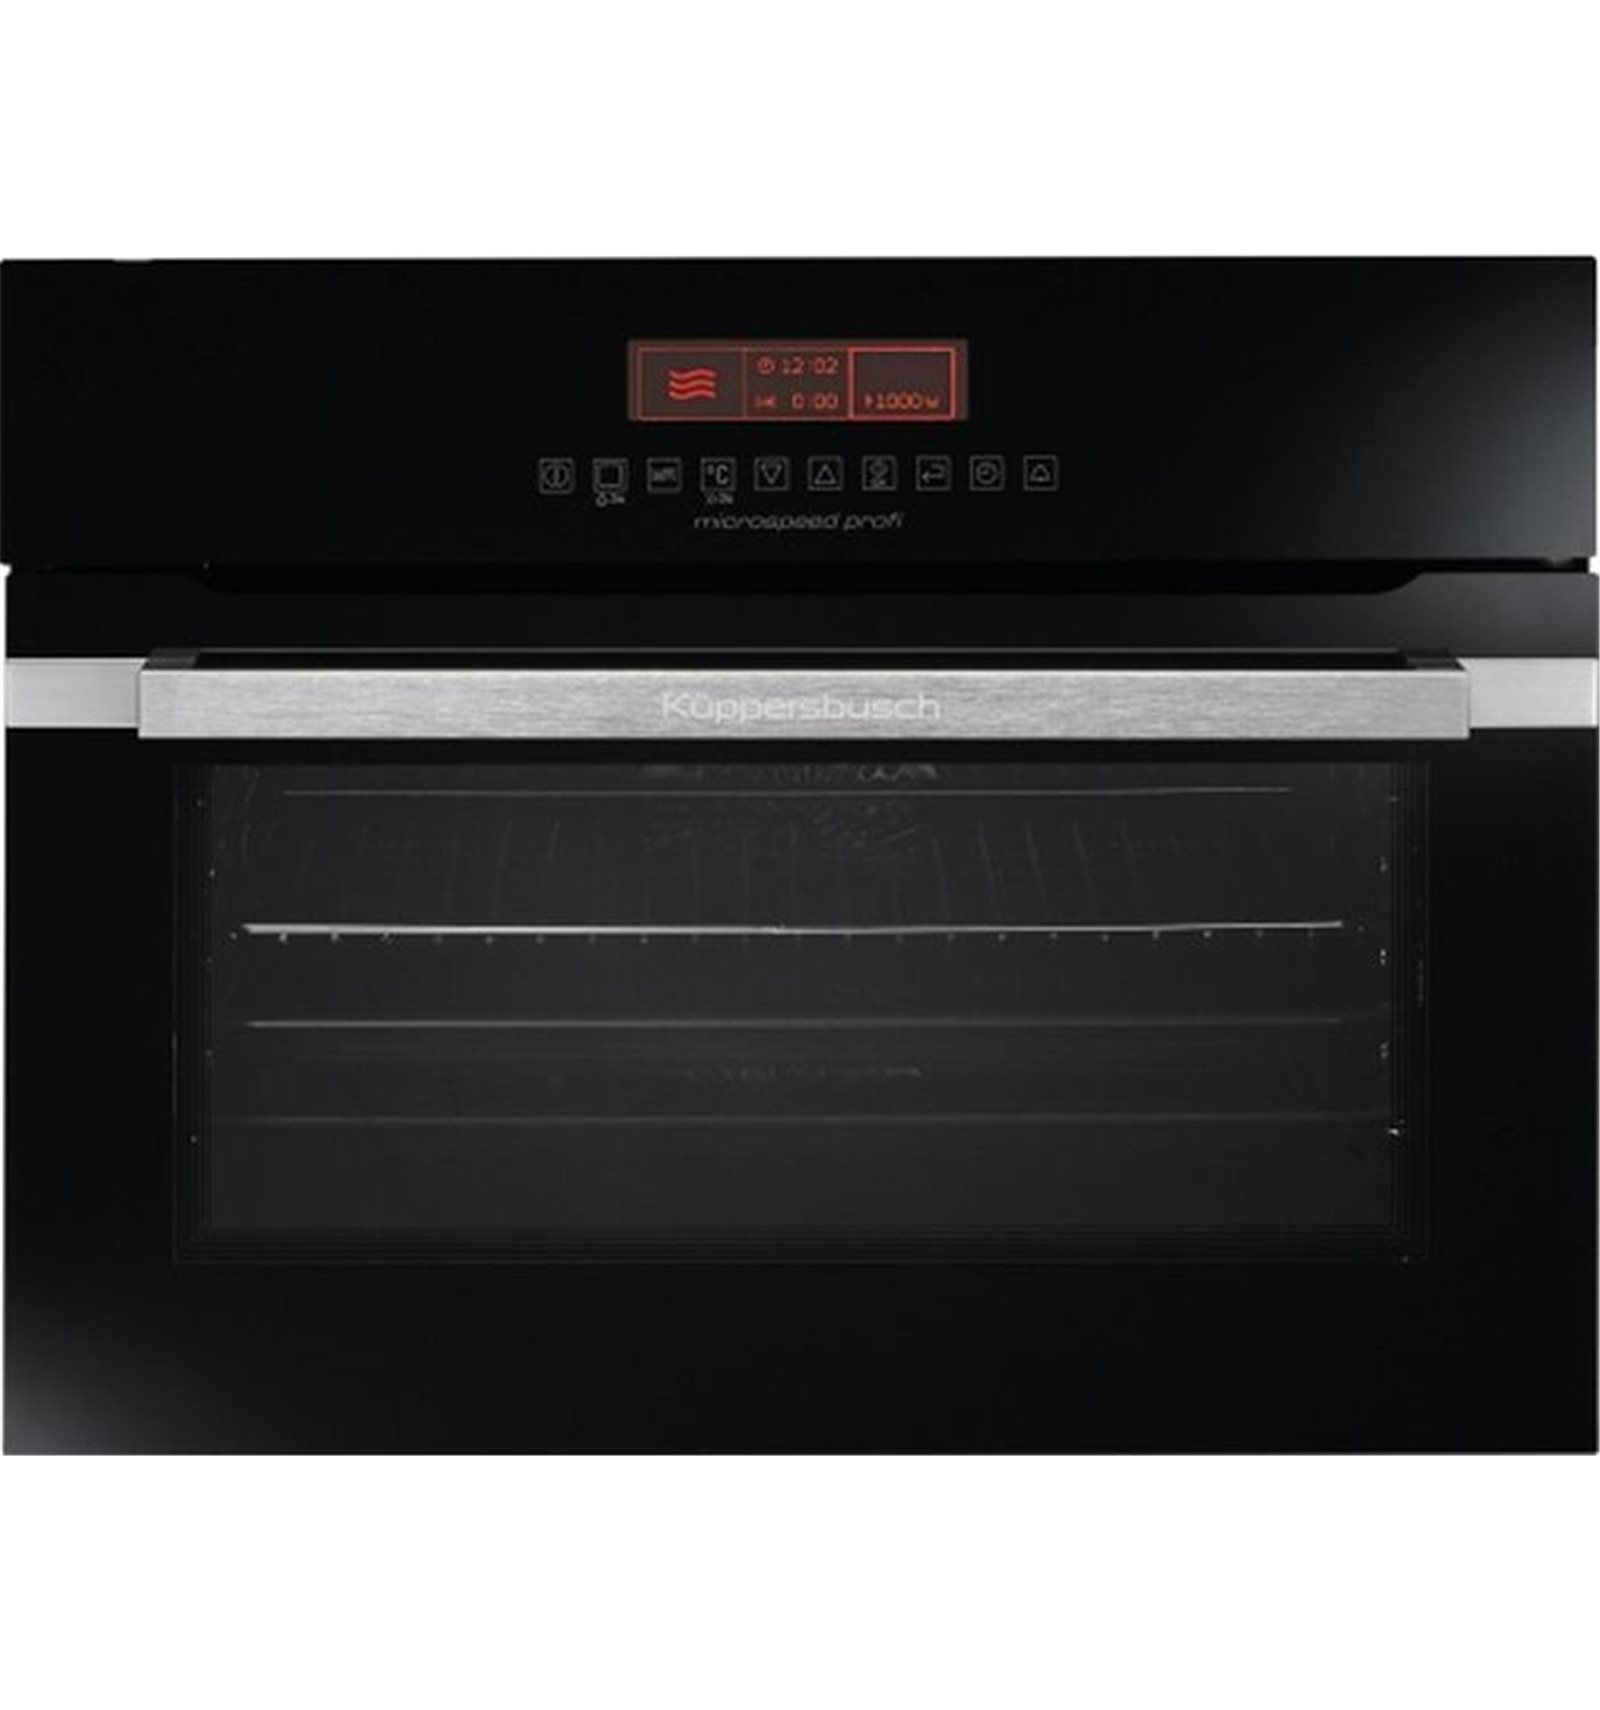 Integrated Microwave Kuppersbusch Eebkm 6750 J Profession 43 Oven With